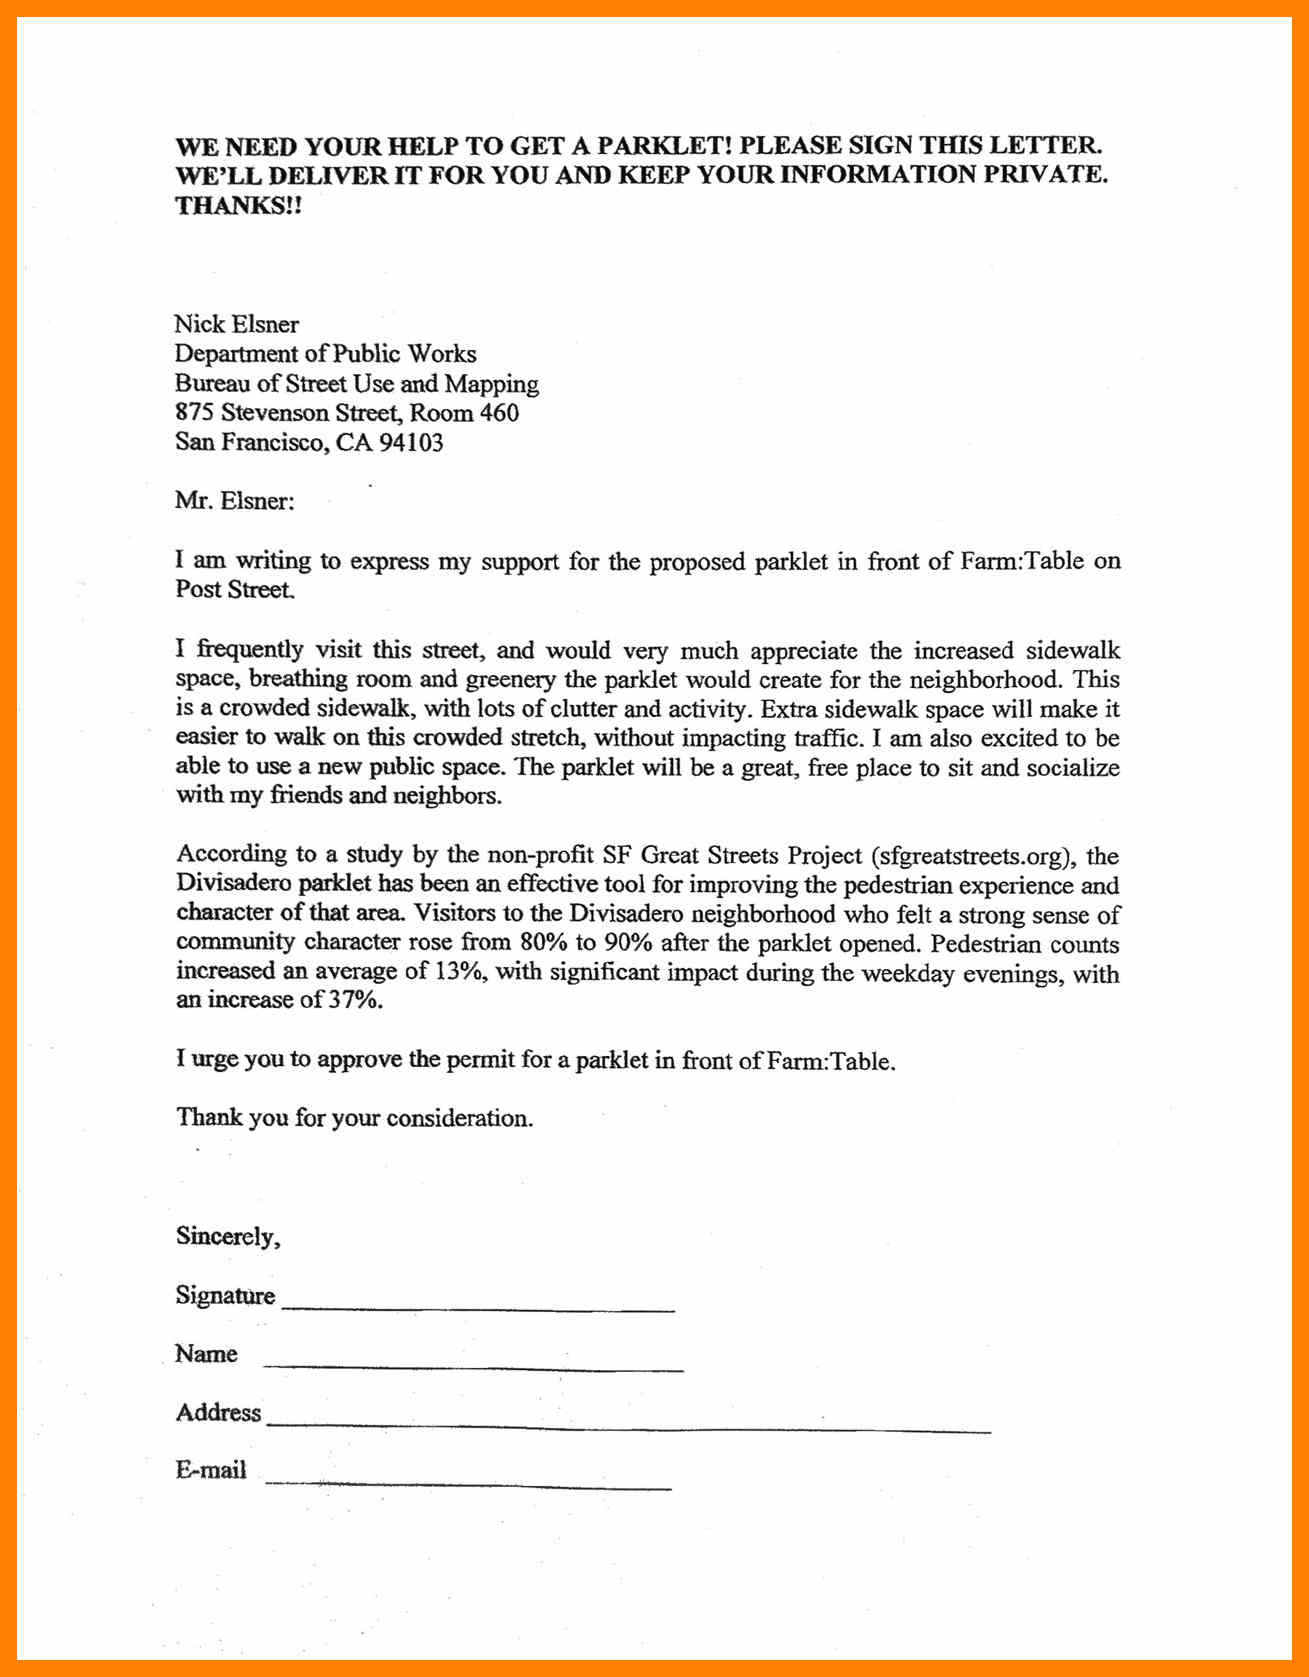 Petition Letter Template - How to Write A Petition Letter Sample Image Collections Letter